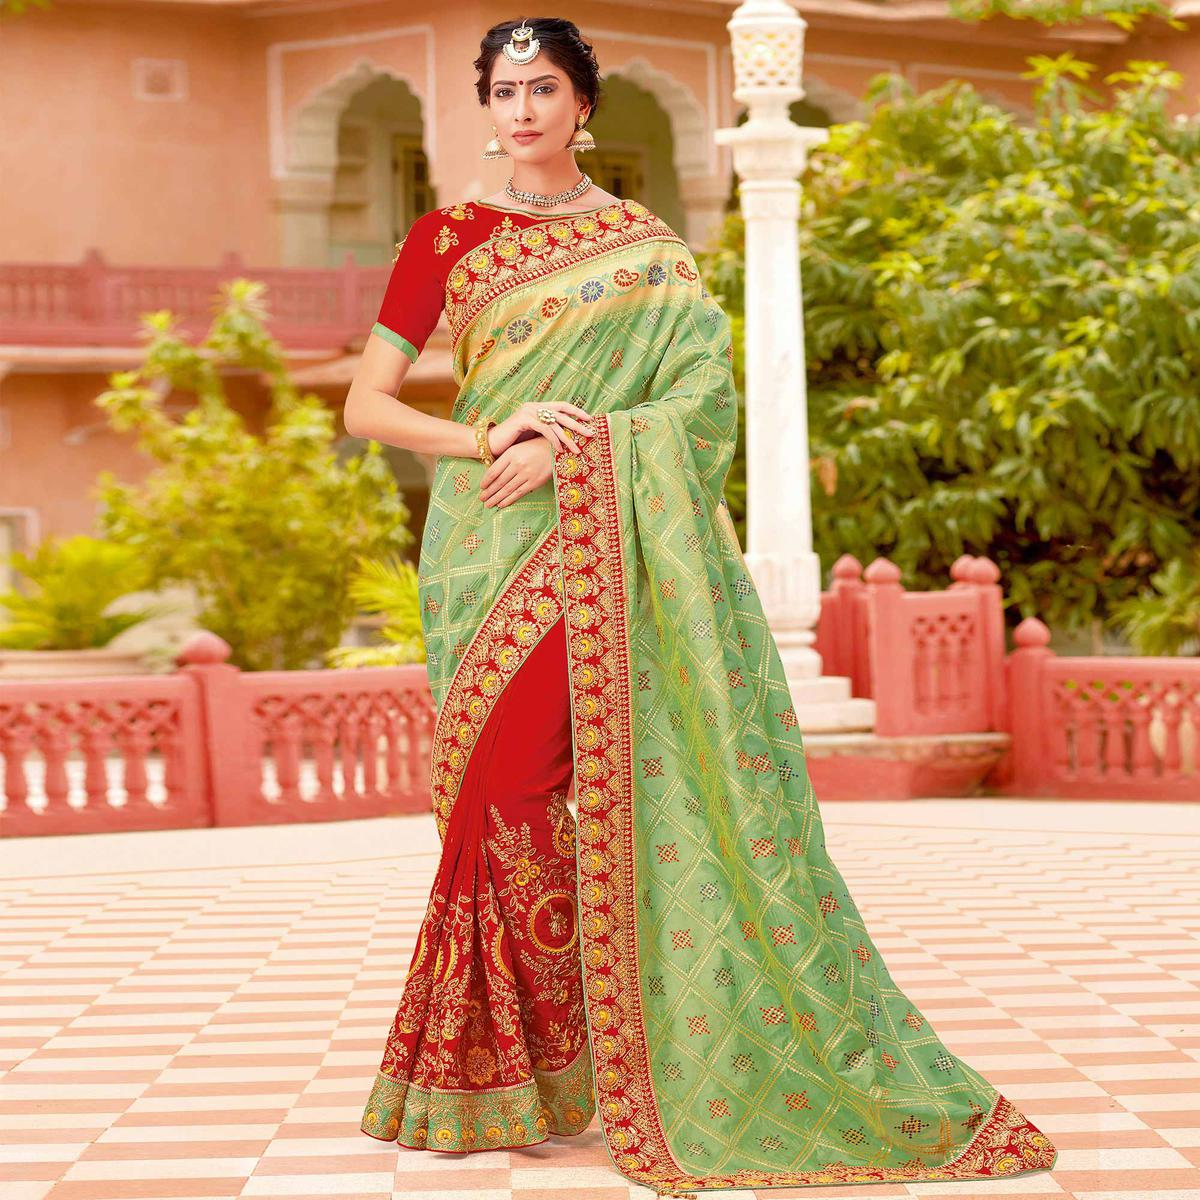 Dazzling Light Green-Red Colored Partywear Woven-Embroidered Silk Half-Half Saree